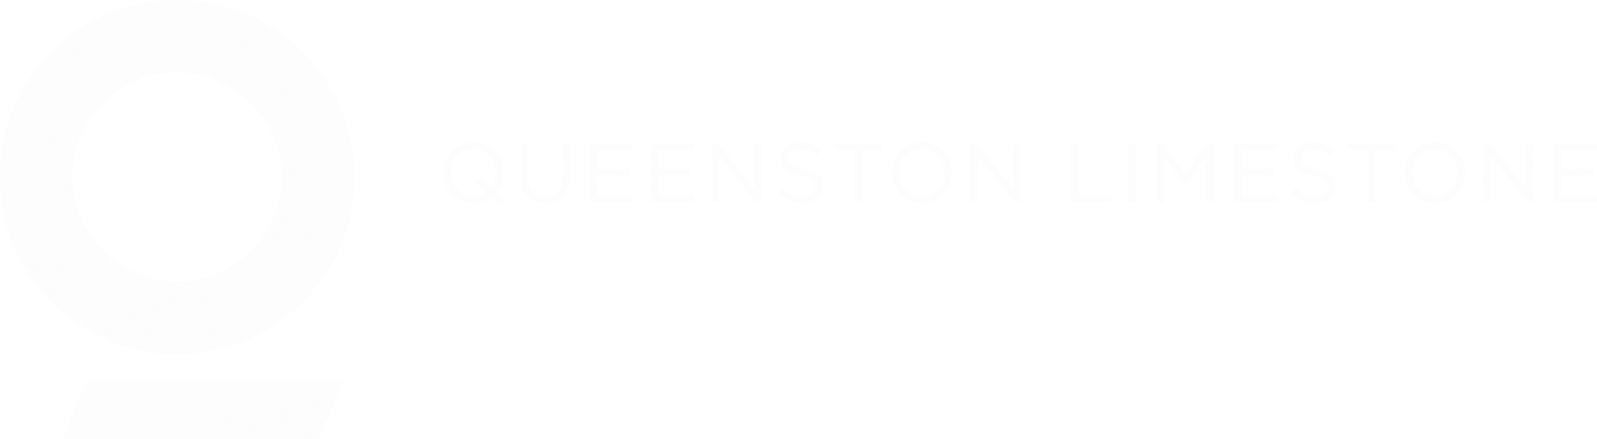 Queenston Limestone